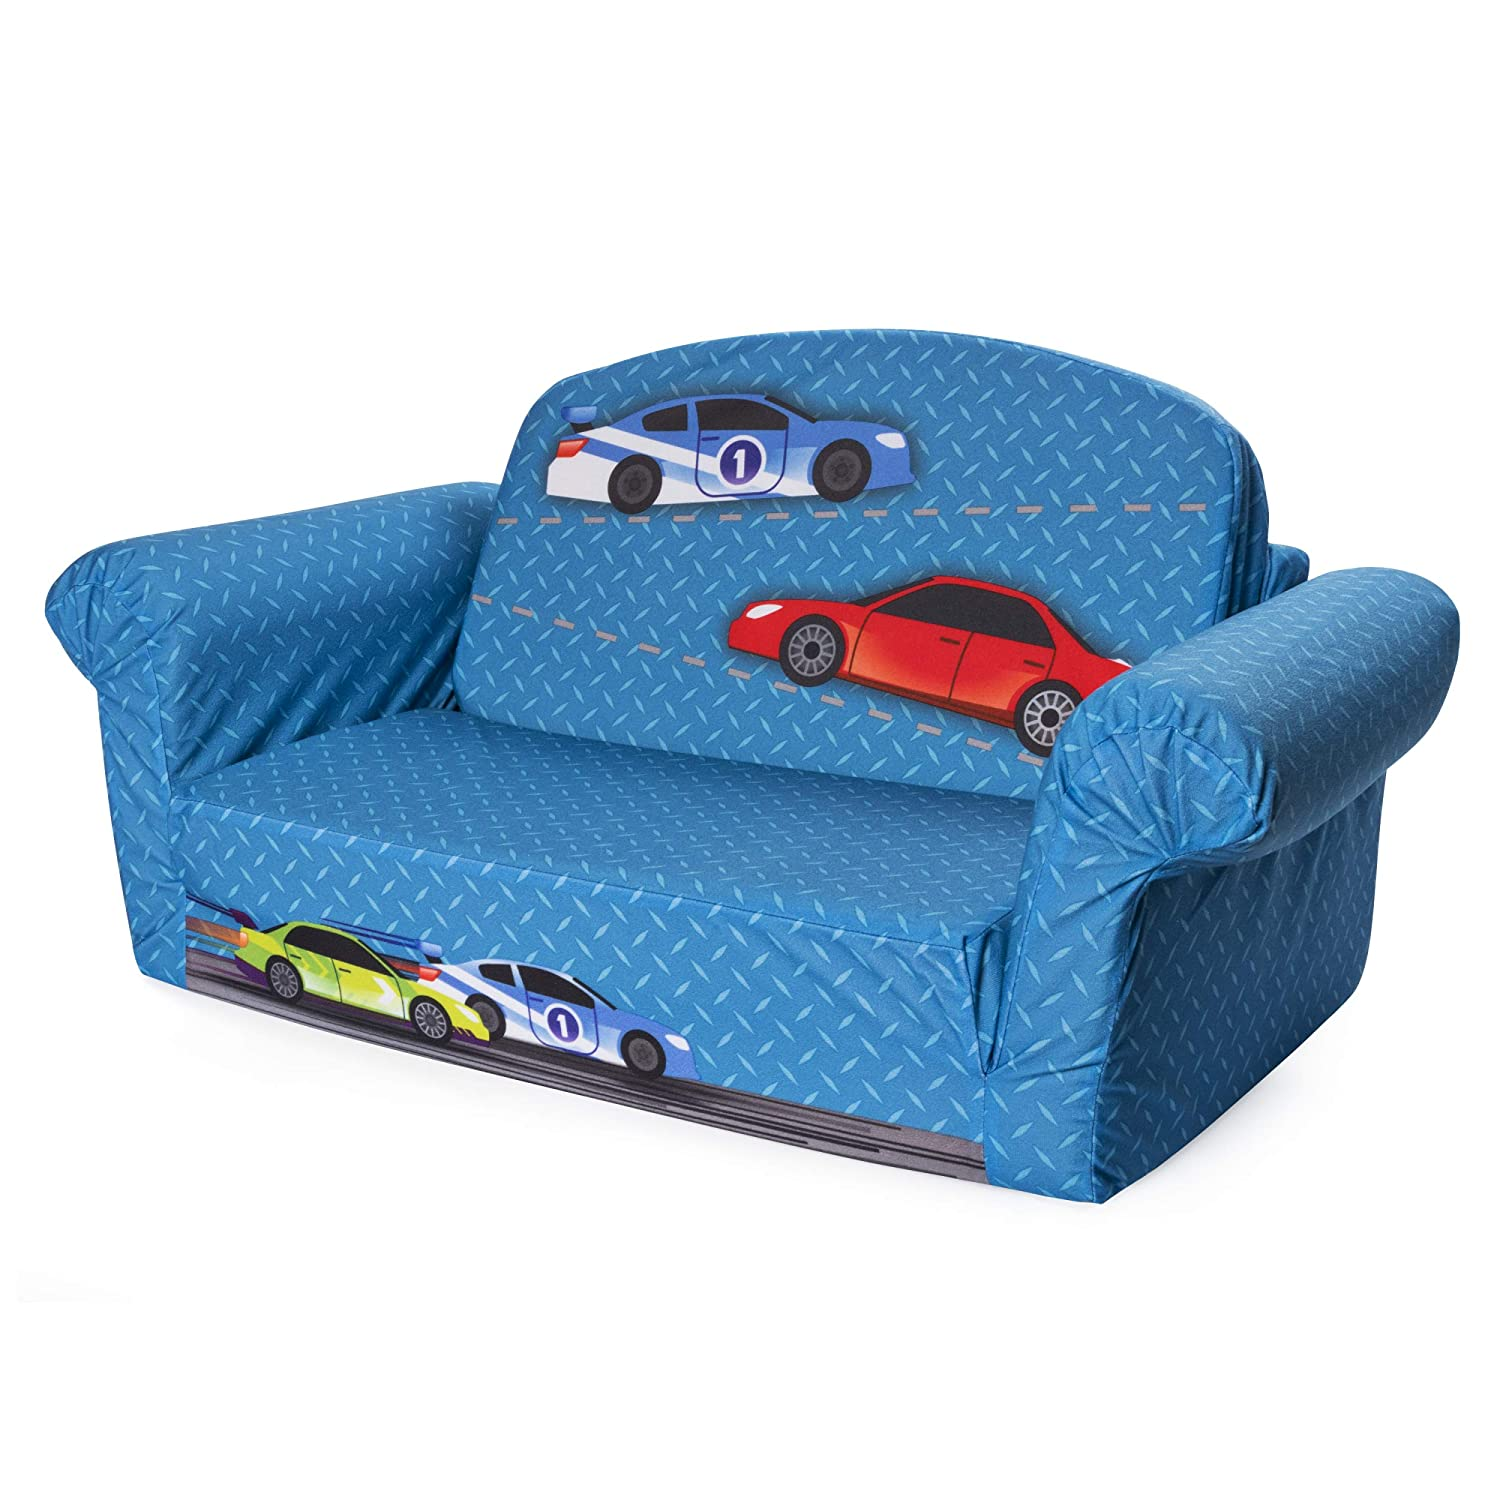 Marshmallow Furniture - Children's 2 in 1 Race Car Flip Open Foam Sofa